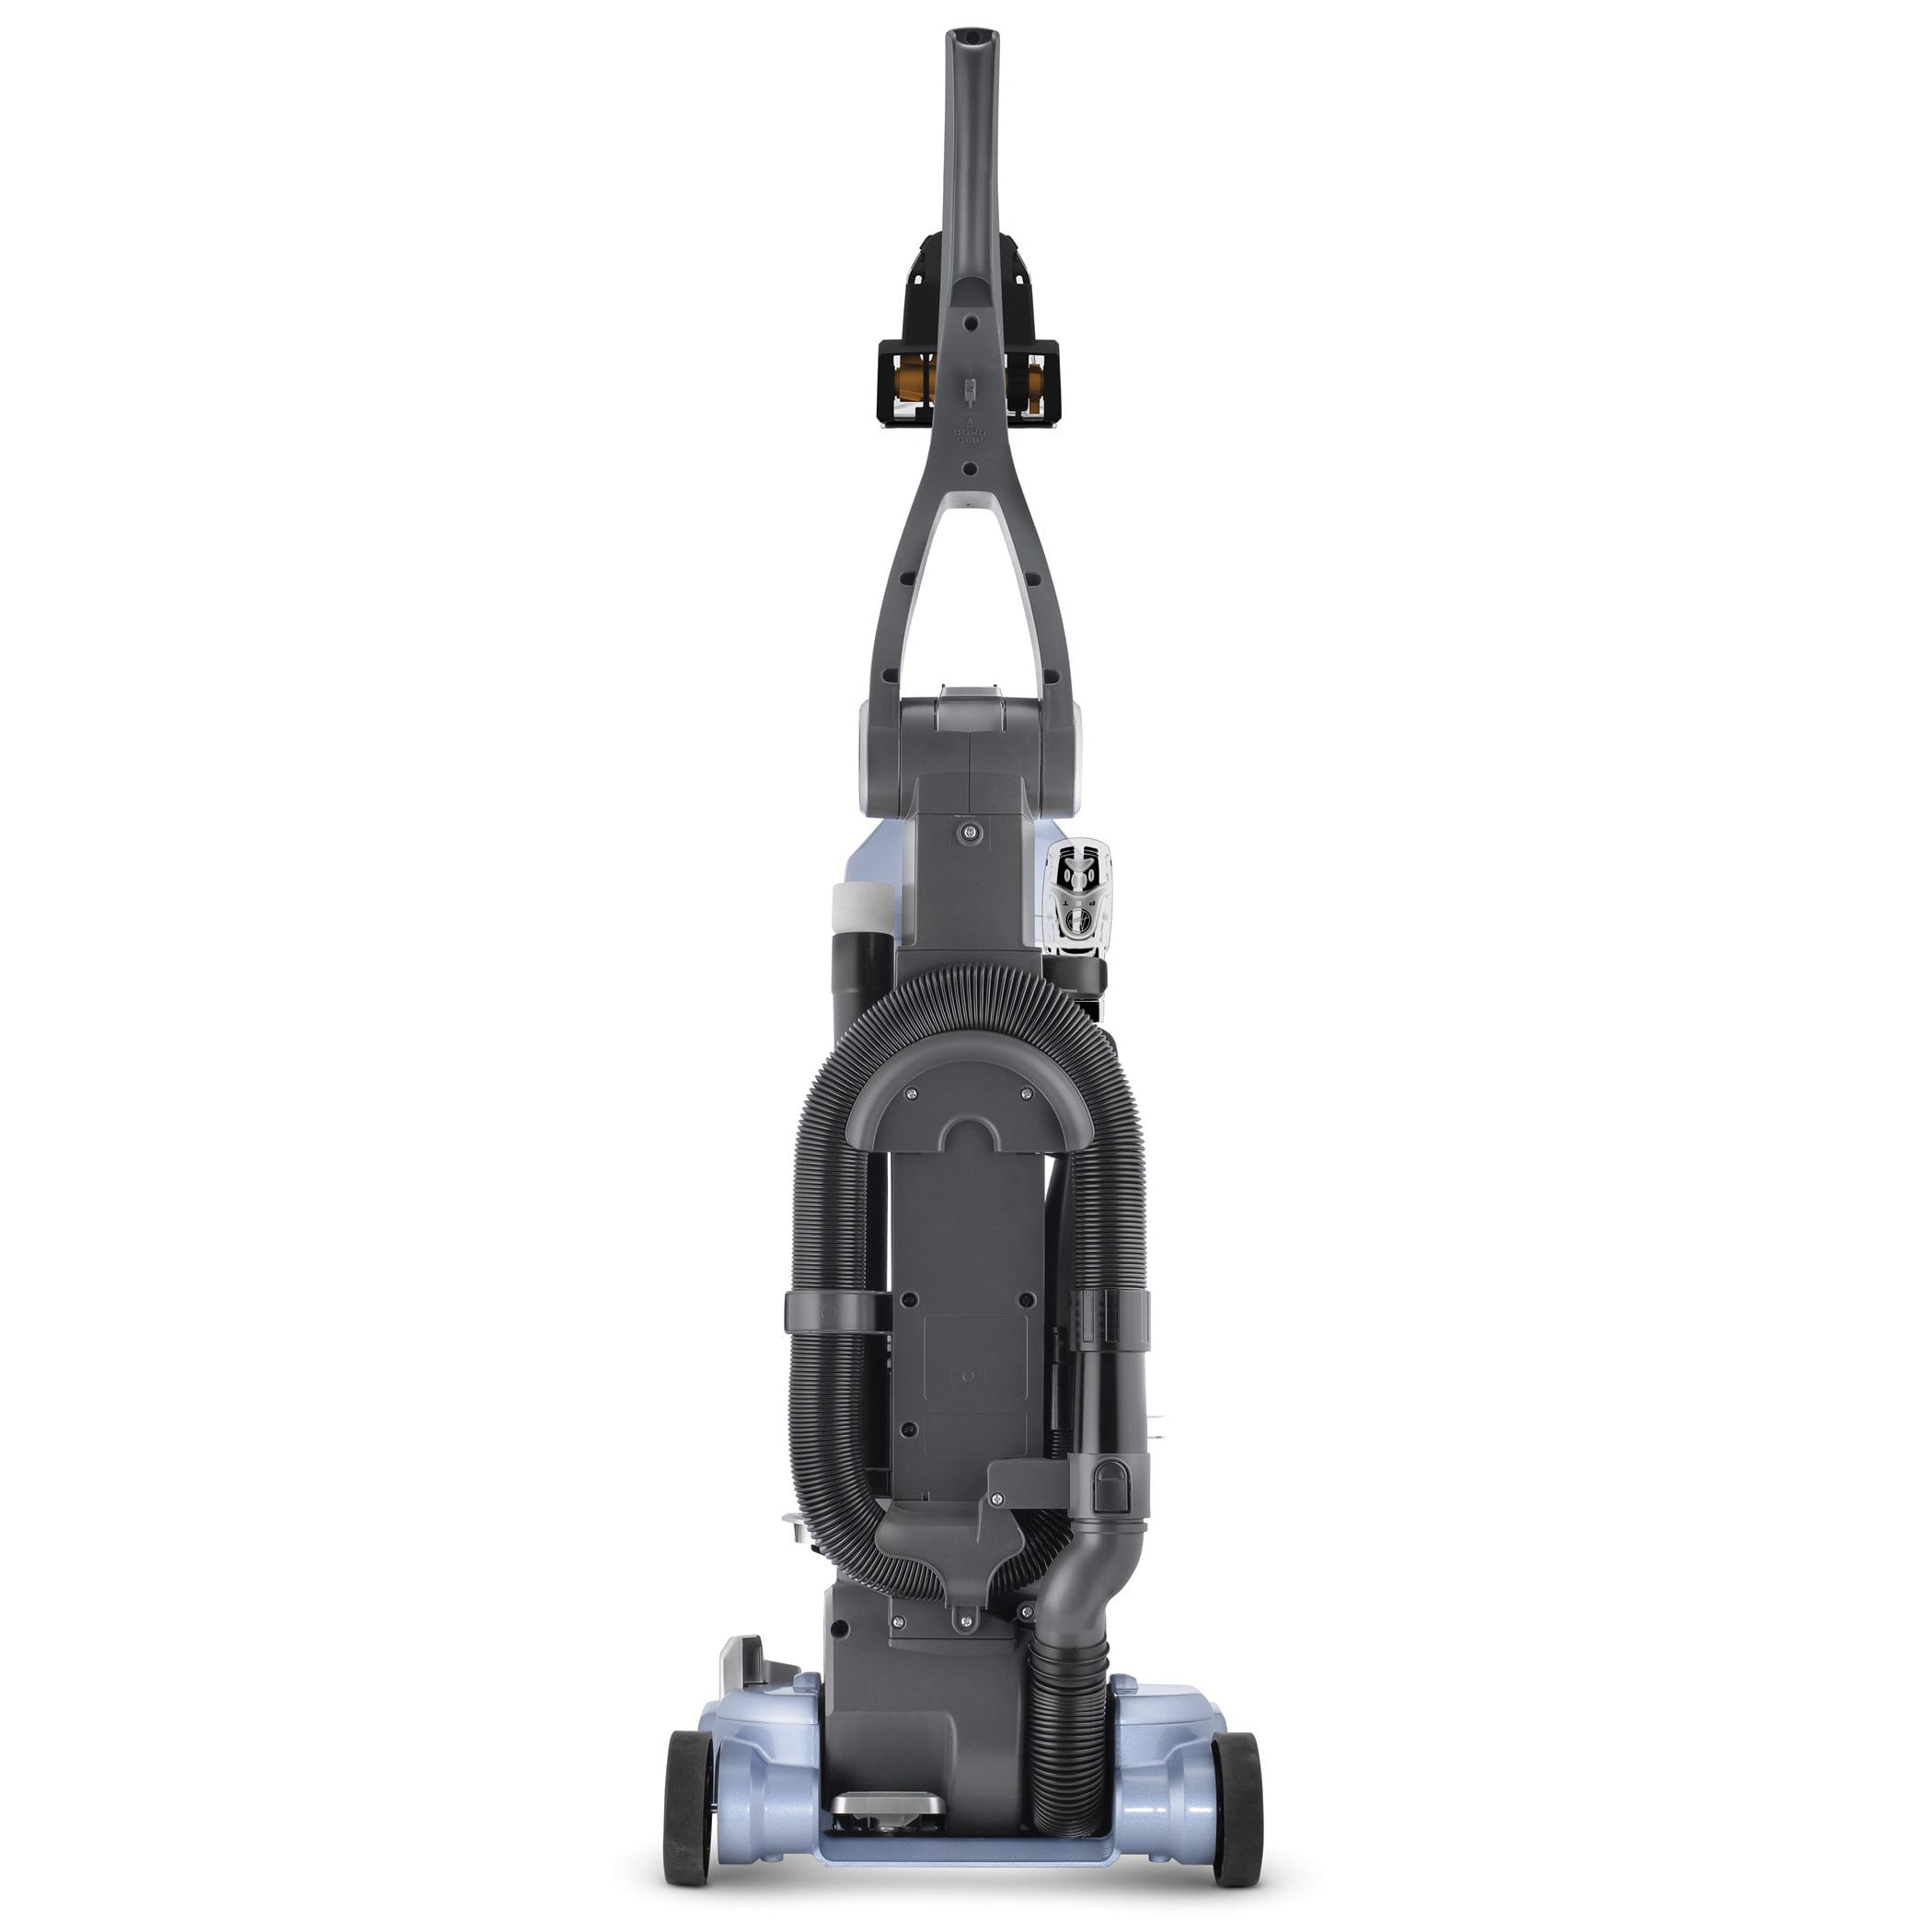 18110271 13e9 4f2b 8859 477b682969d8_1.edd43a3d2ce4417eadd21cec8134de06 hoover windtunnel pet rewind bagless upright vacuum, uh70210  at n-0.co